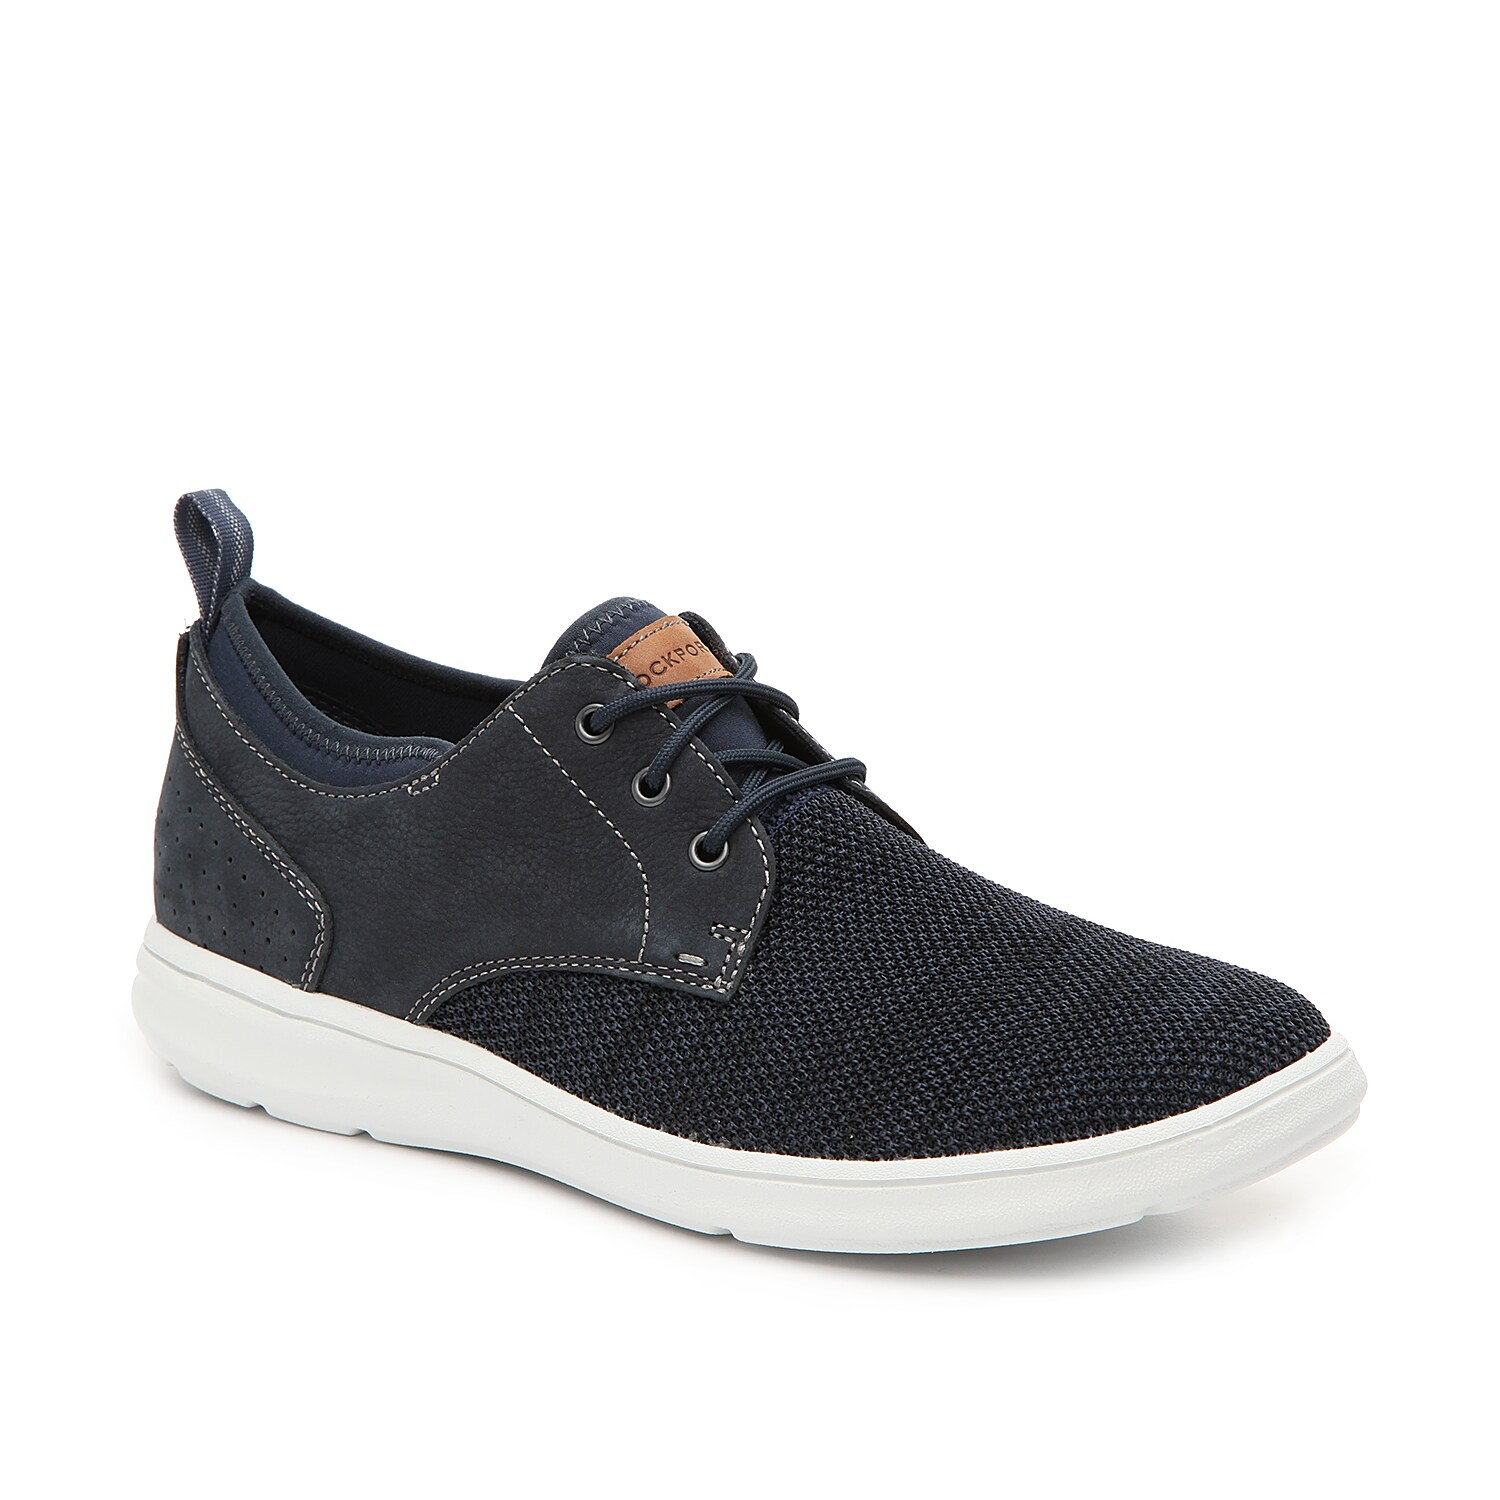 The Zaden sneaker from Rockport will go with anything in your wardrobe. Finished with an EVA midsole and truTECH® memory foam footbed, this leather lace-up will keep you comfortable all day long.